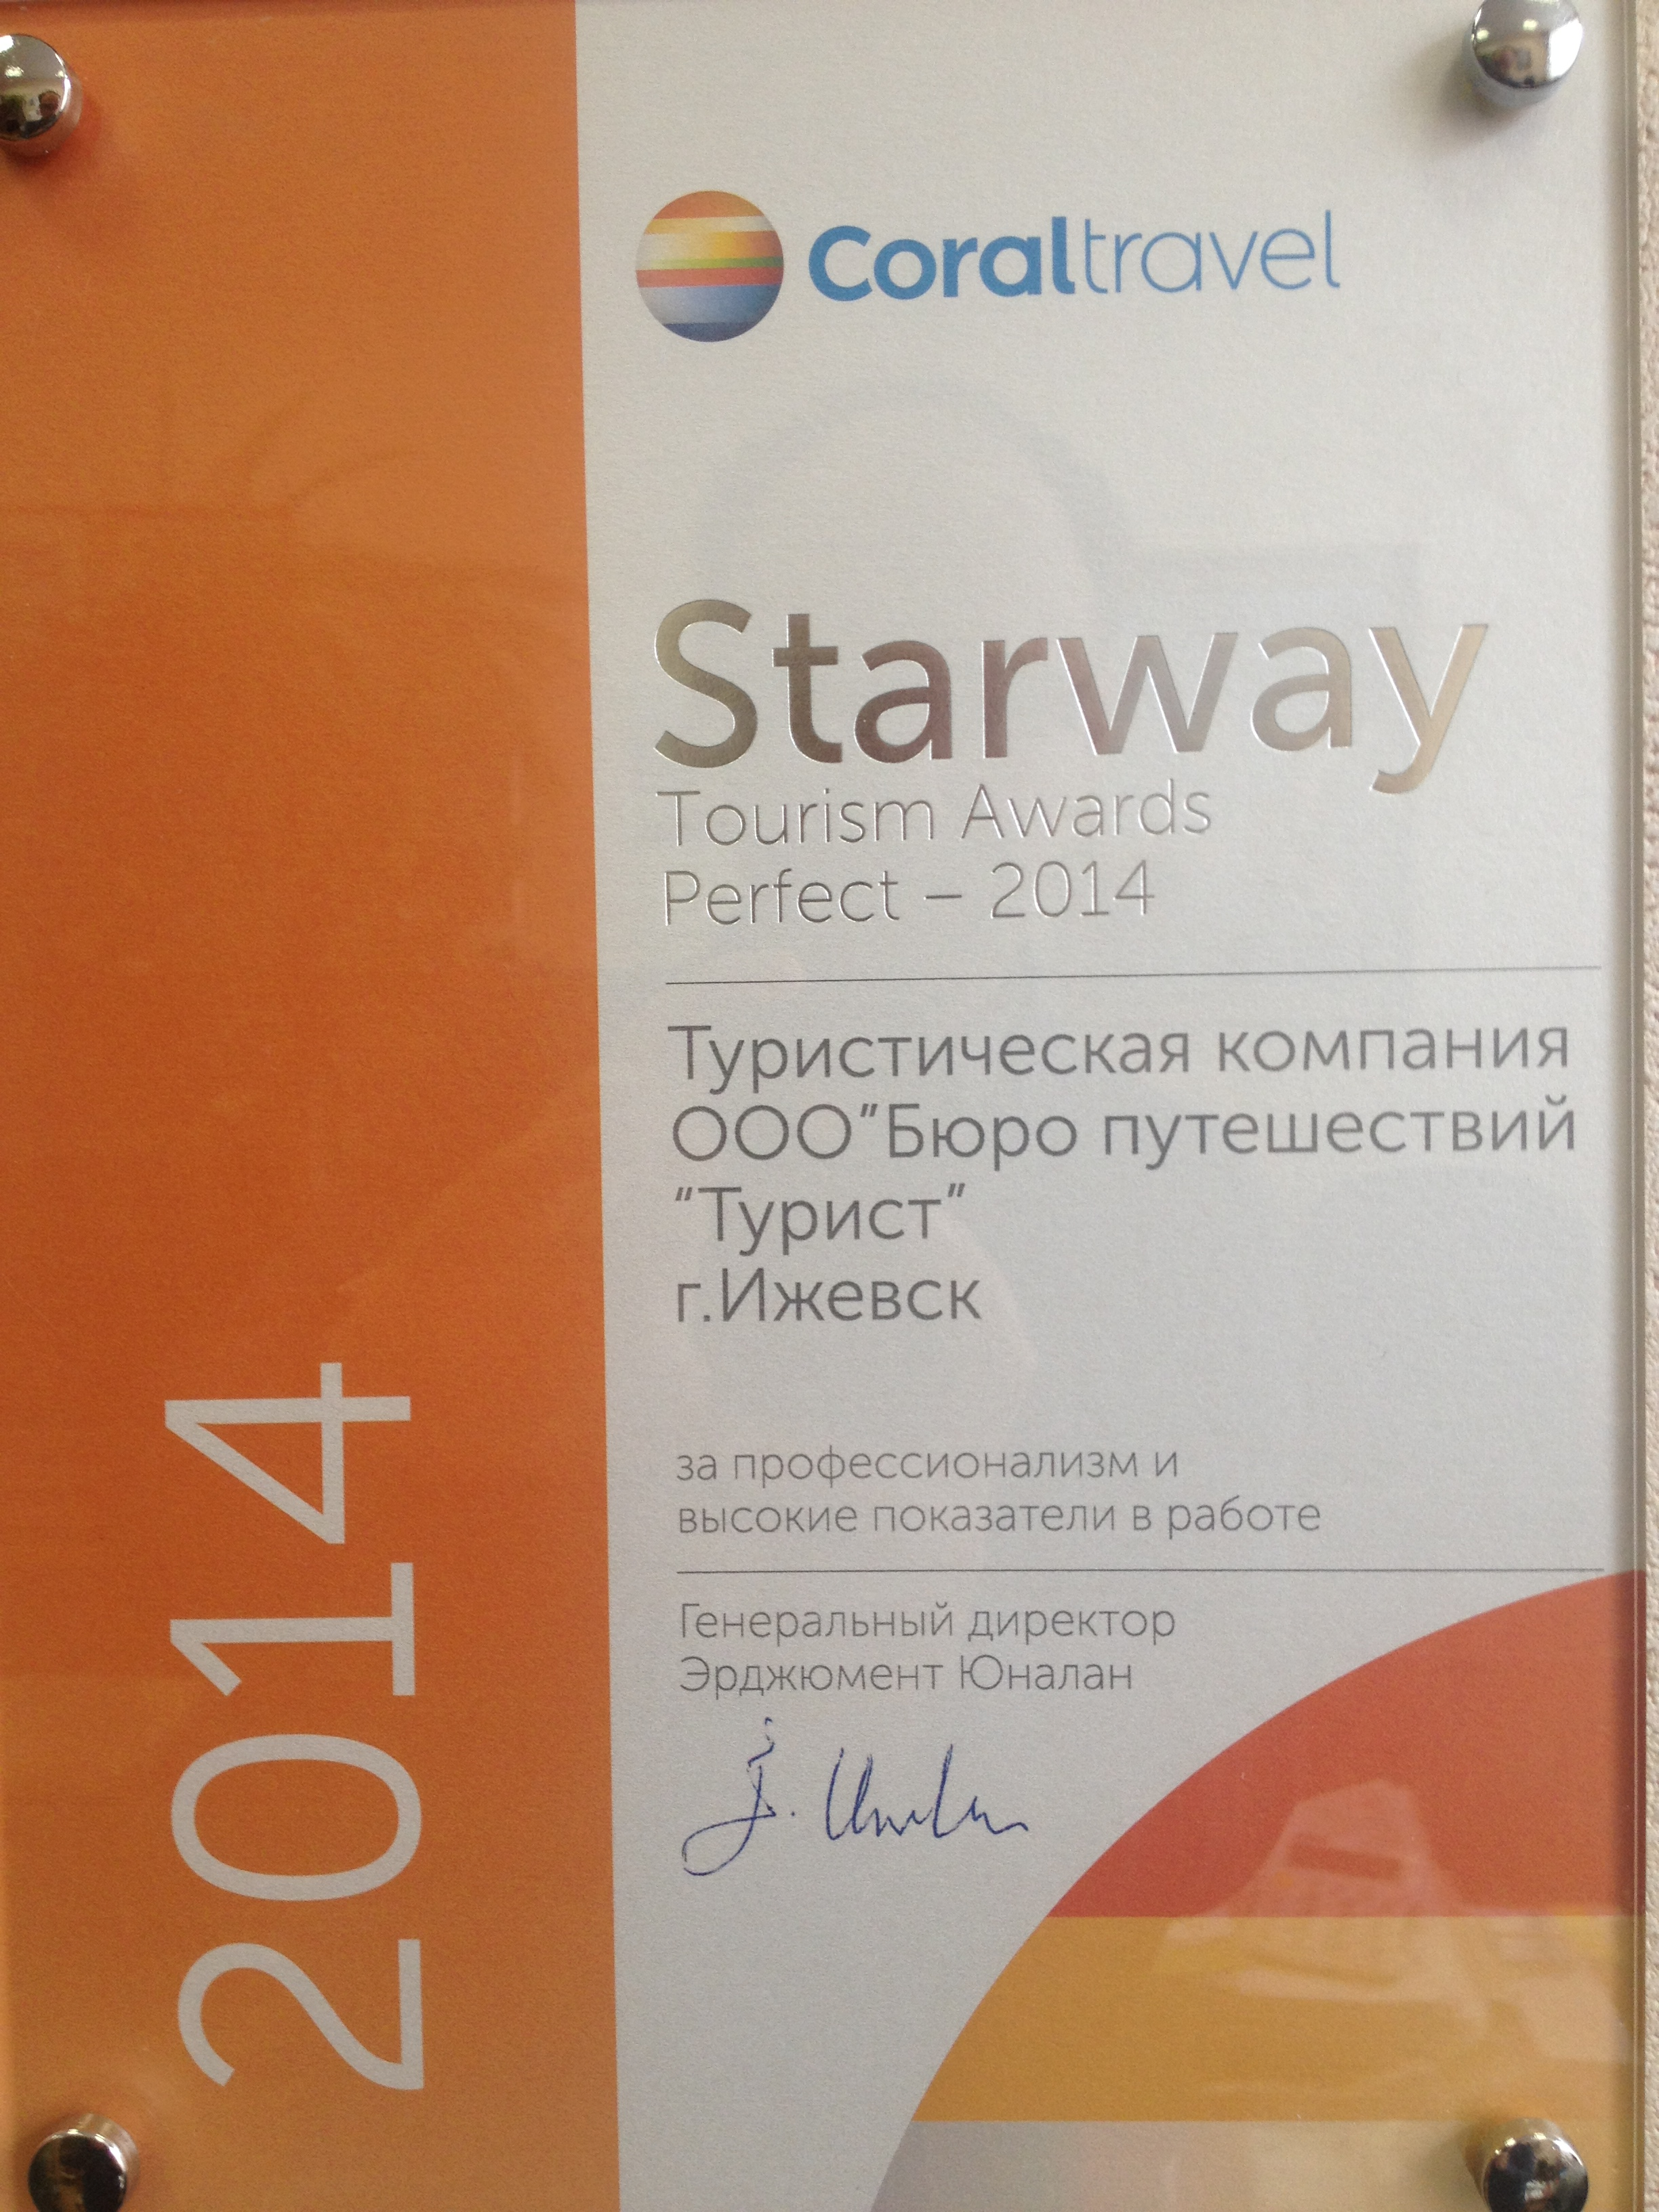 Starway Tourism Awards Perfect - 2014. Премия туроператора Coral Travel.